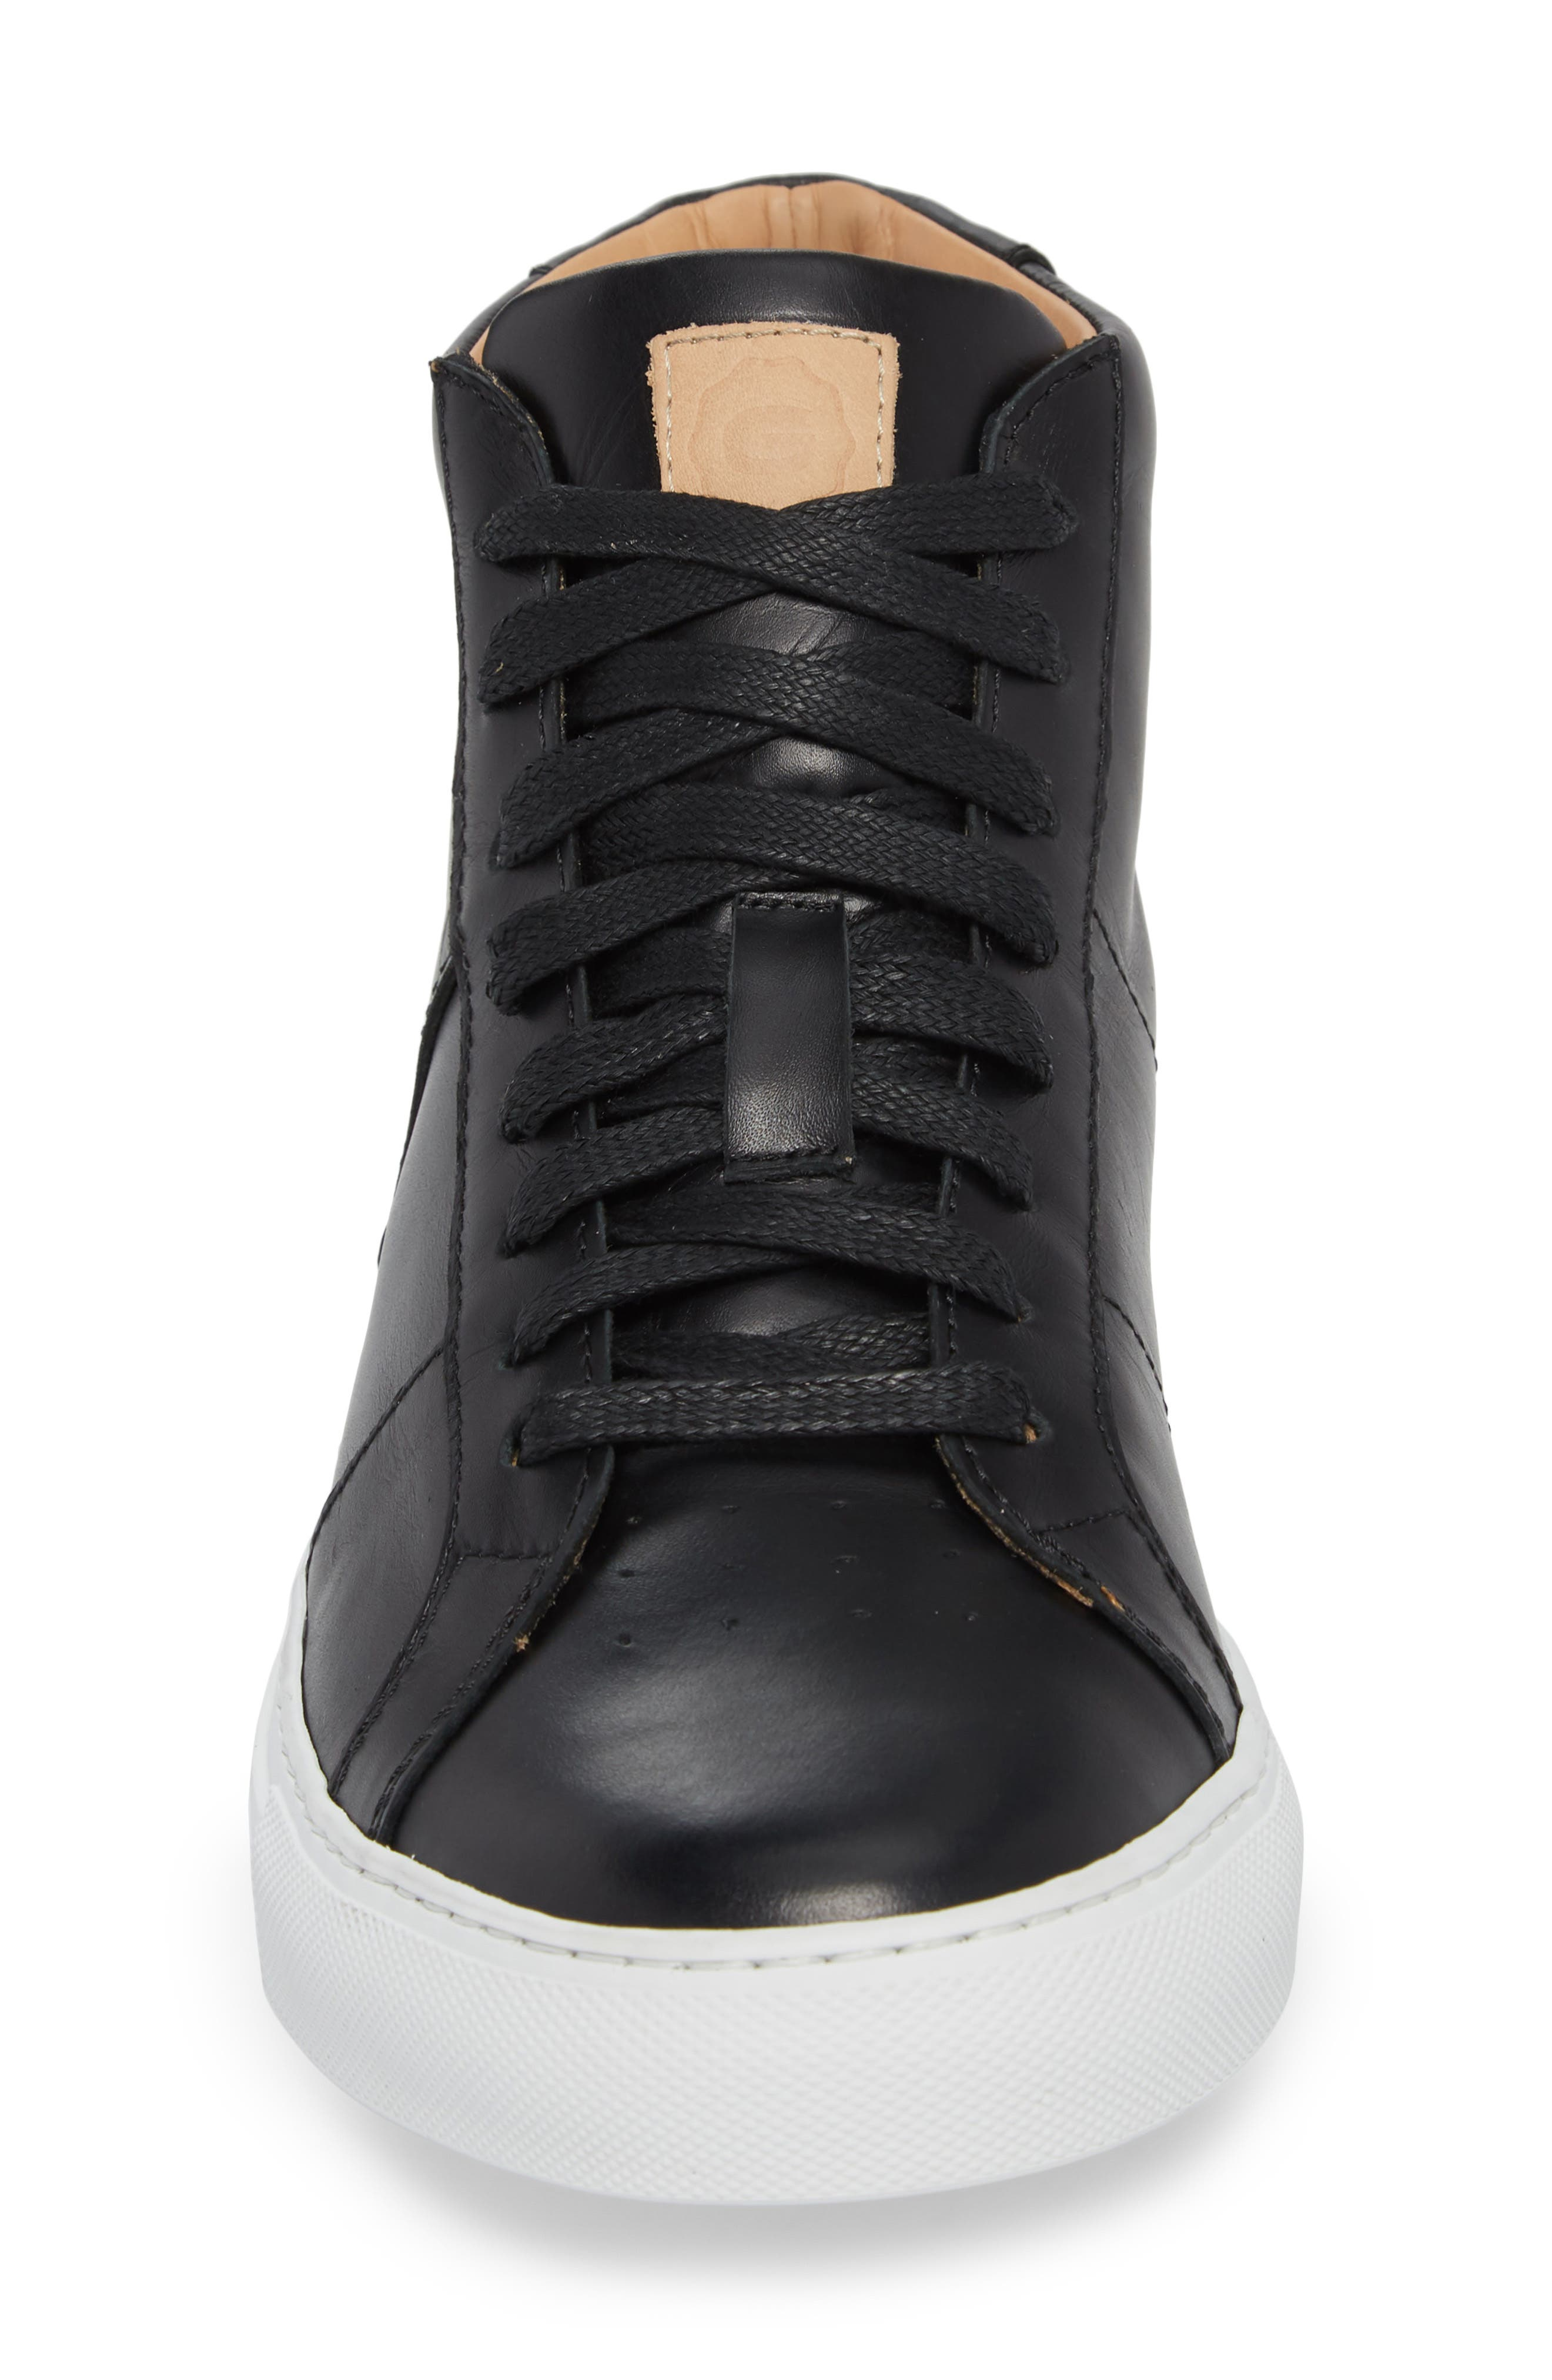 Royale High Top Sneaker,                             Alternate thumbnail 4, color,                             001